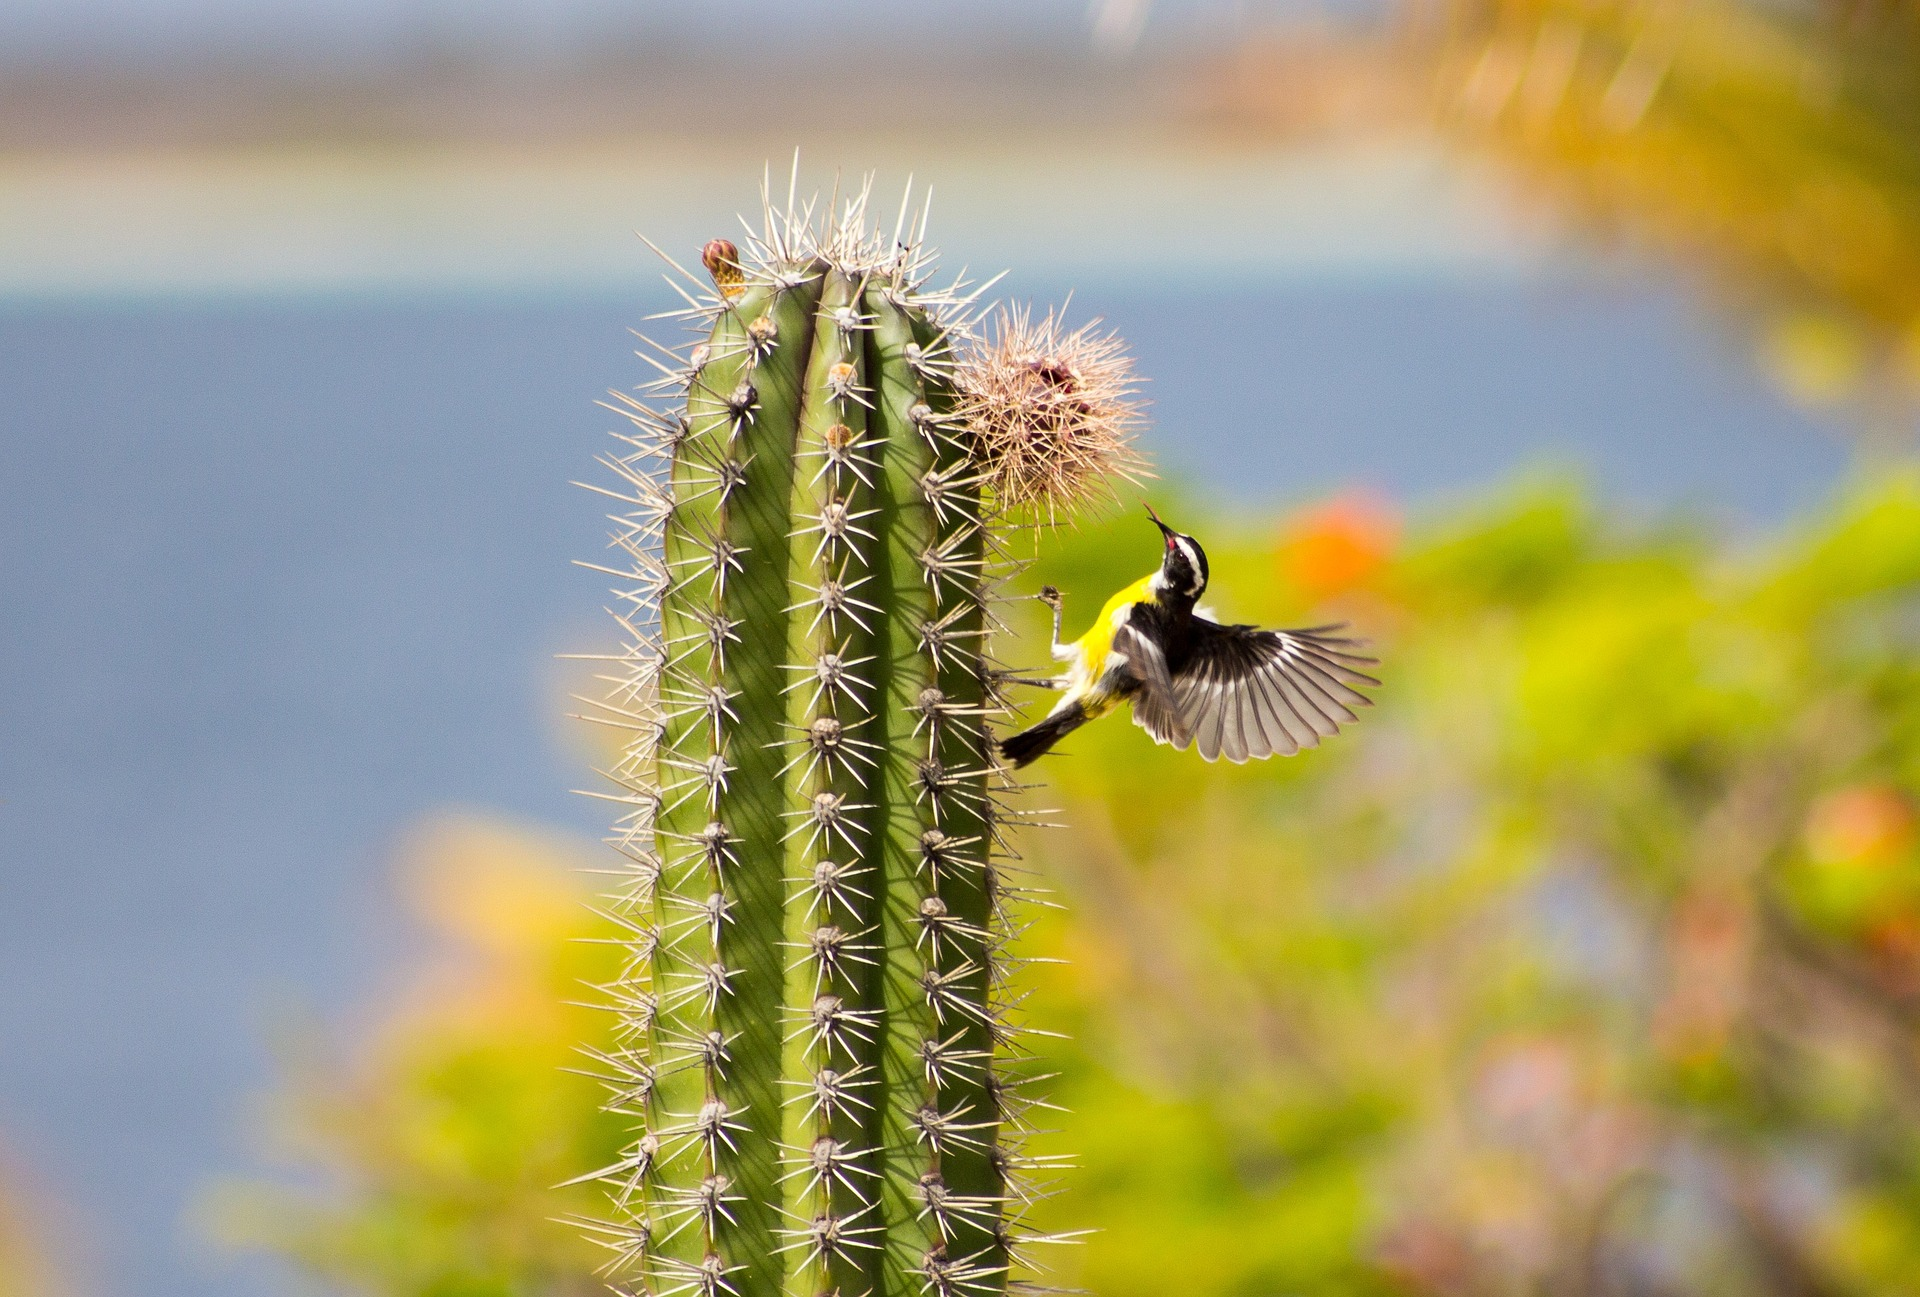 a yellow bird with brown and white wings landing on the side of a cactus